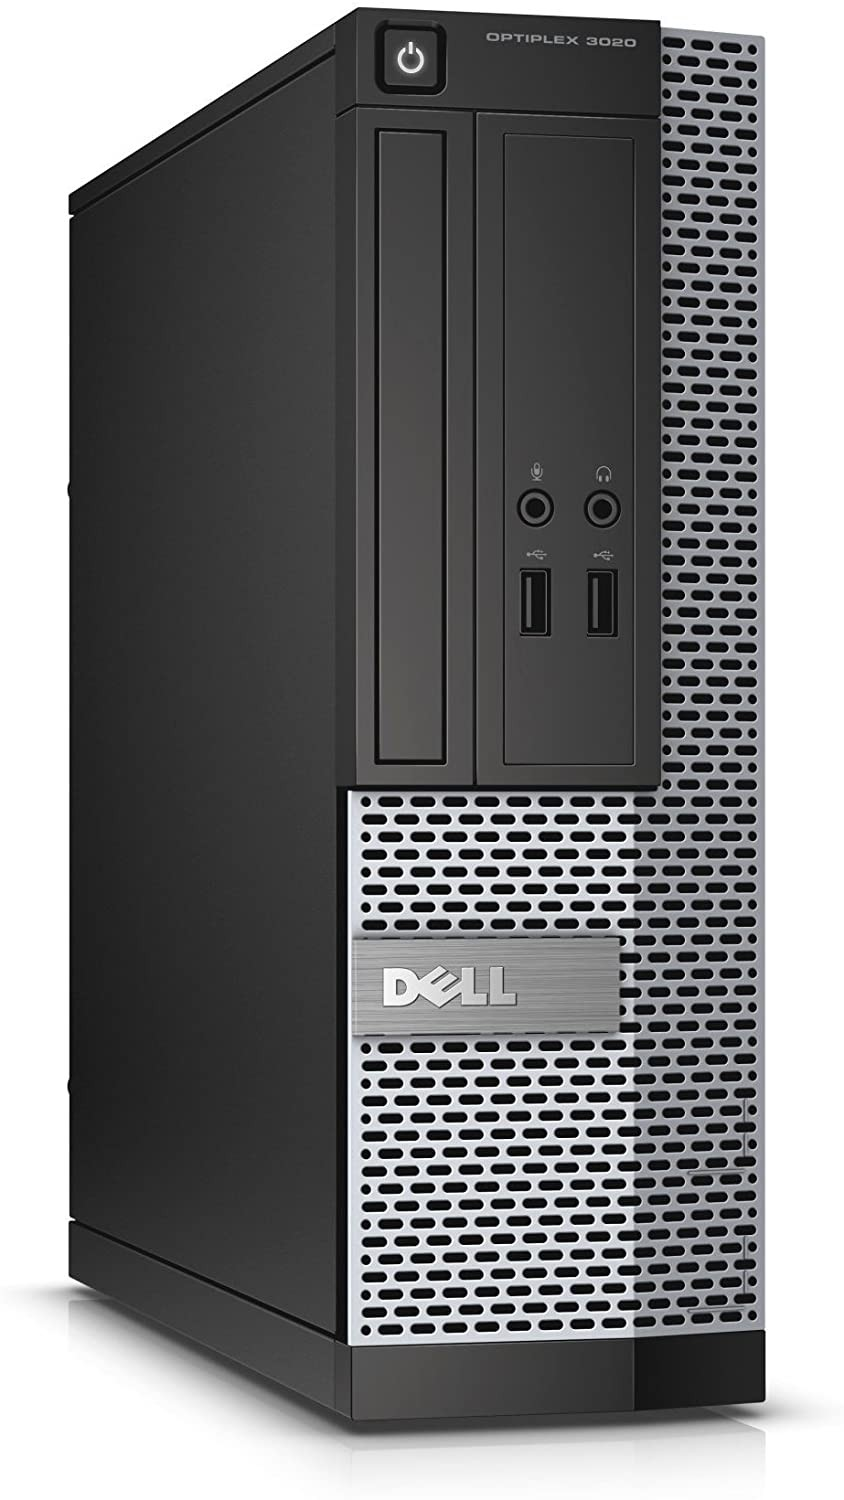 Refurbished laptops & desktops - Refurbished DELL OPTIPLEX 3020 MT (CORE I3 4TH GEN/4GB/320GB/DOS)